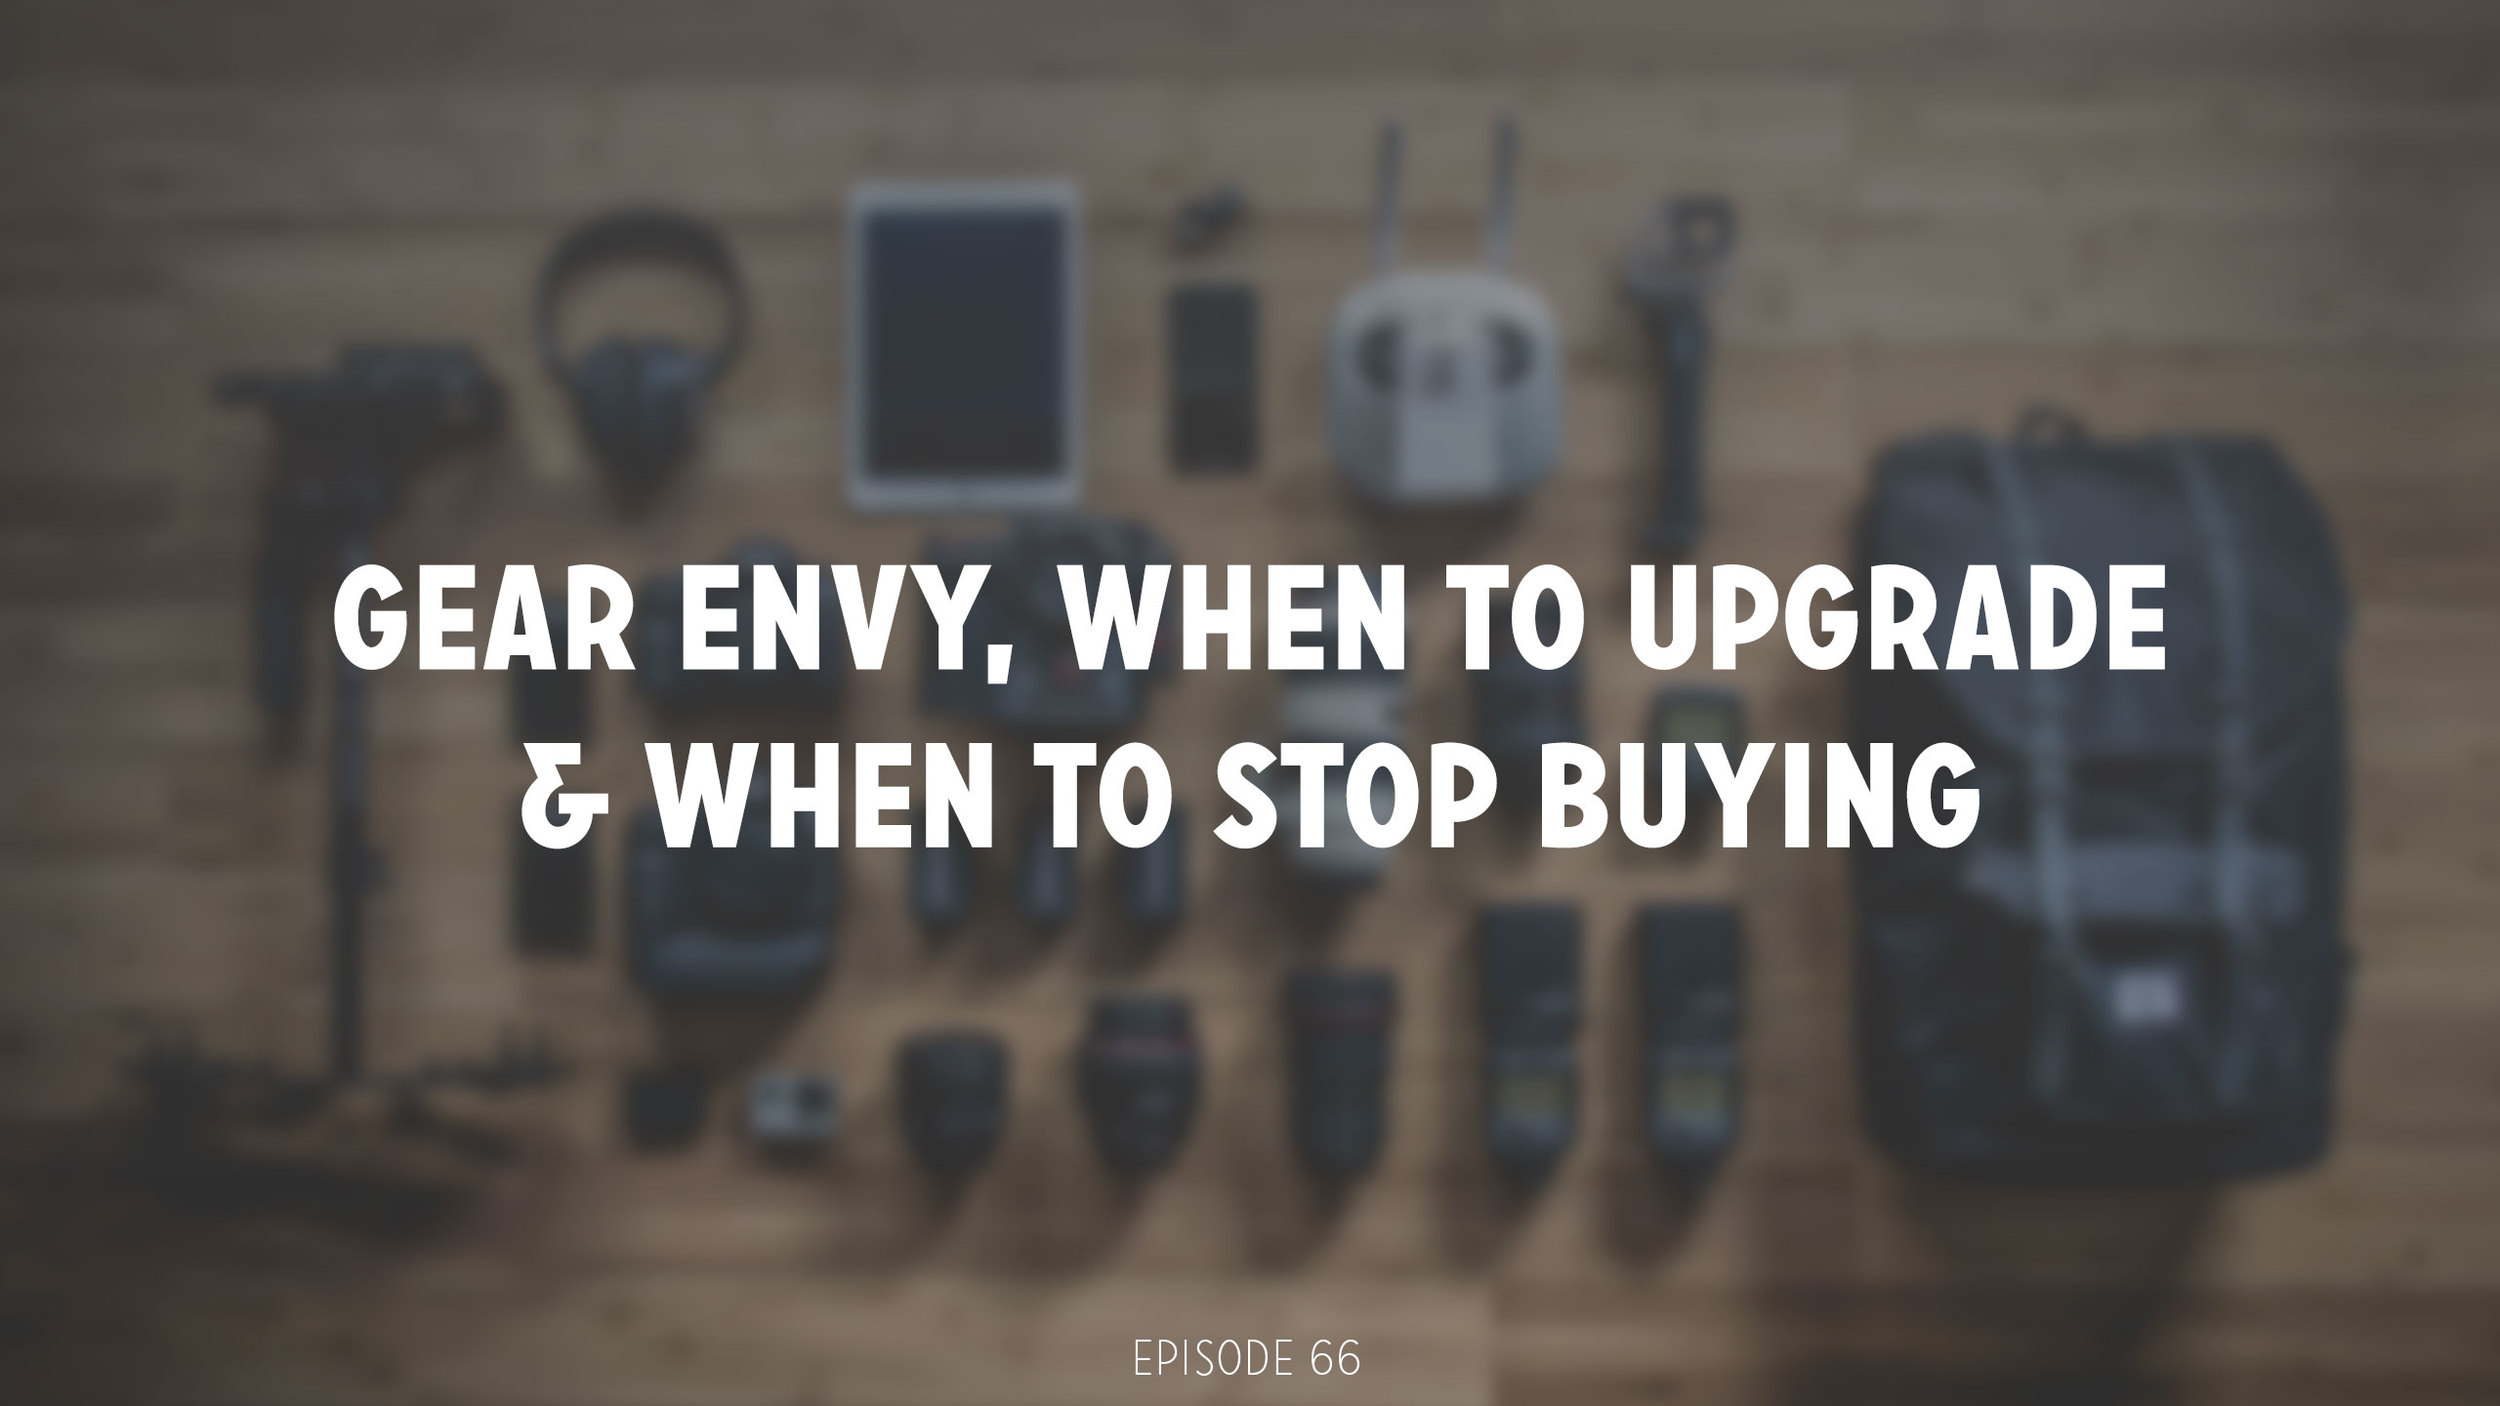 DVG-066-Gear-Envy,-When-to-Upgrade,-and-How-to-Stop-Buying-It.jpg